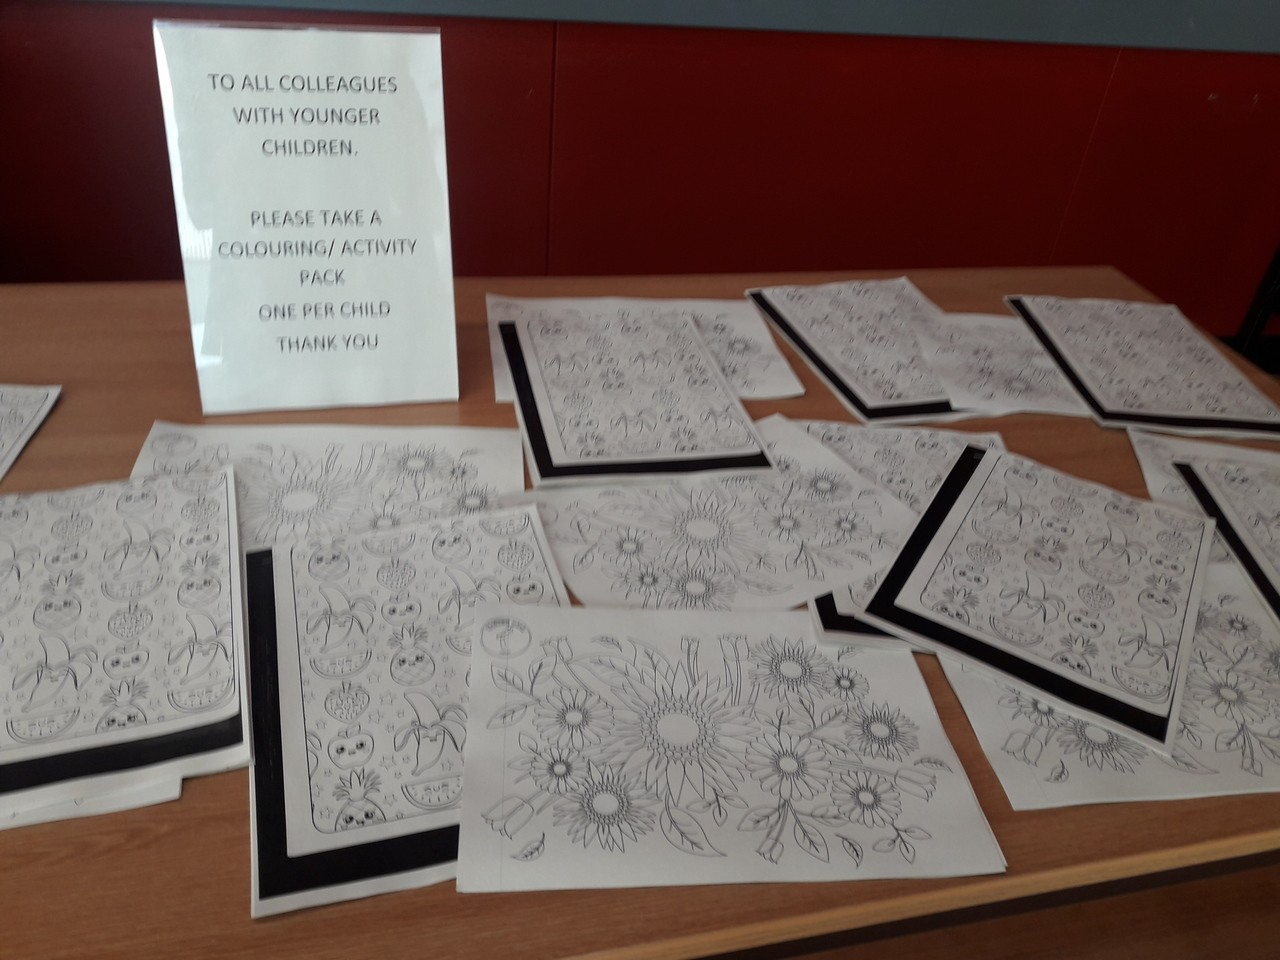 Activity and colouring packs | Asda Rawtenstall